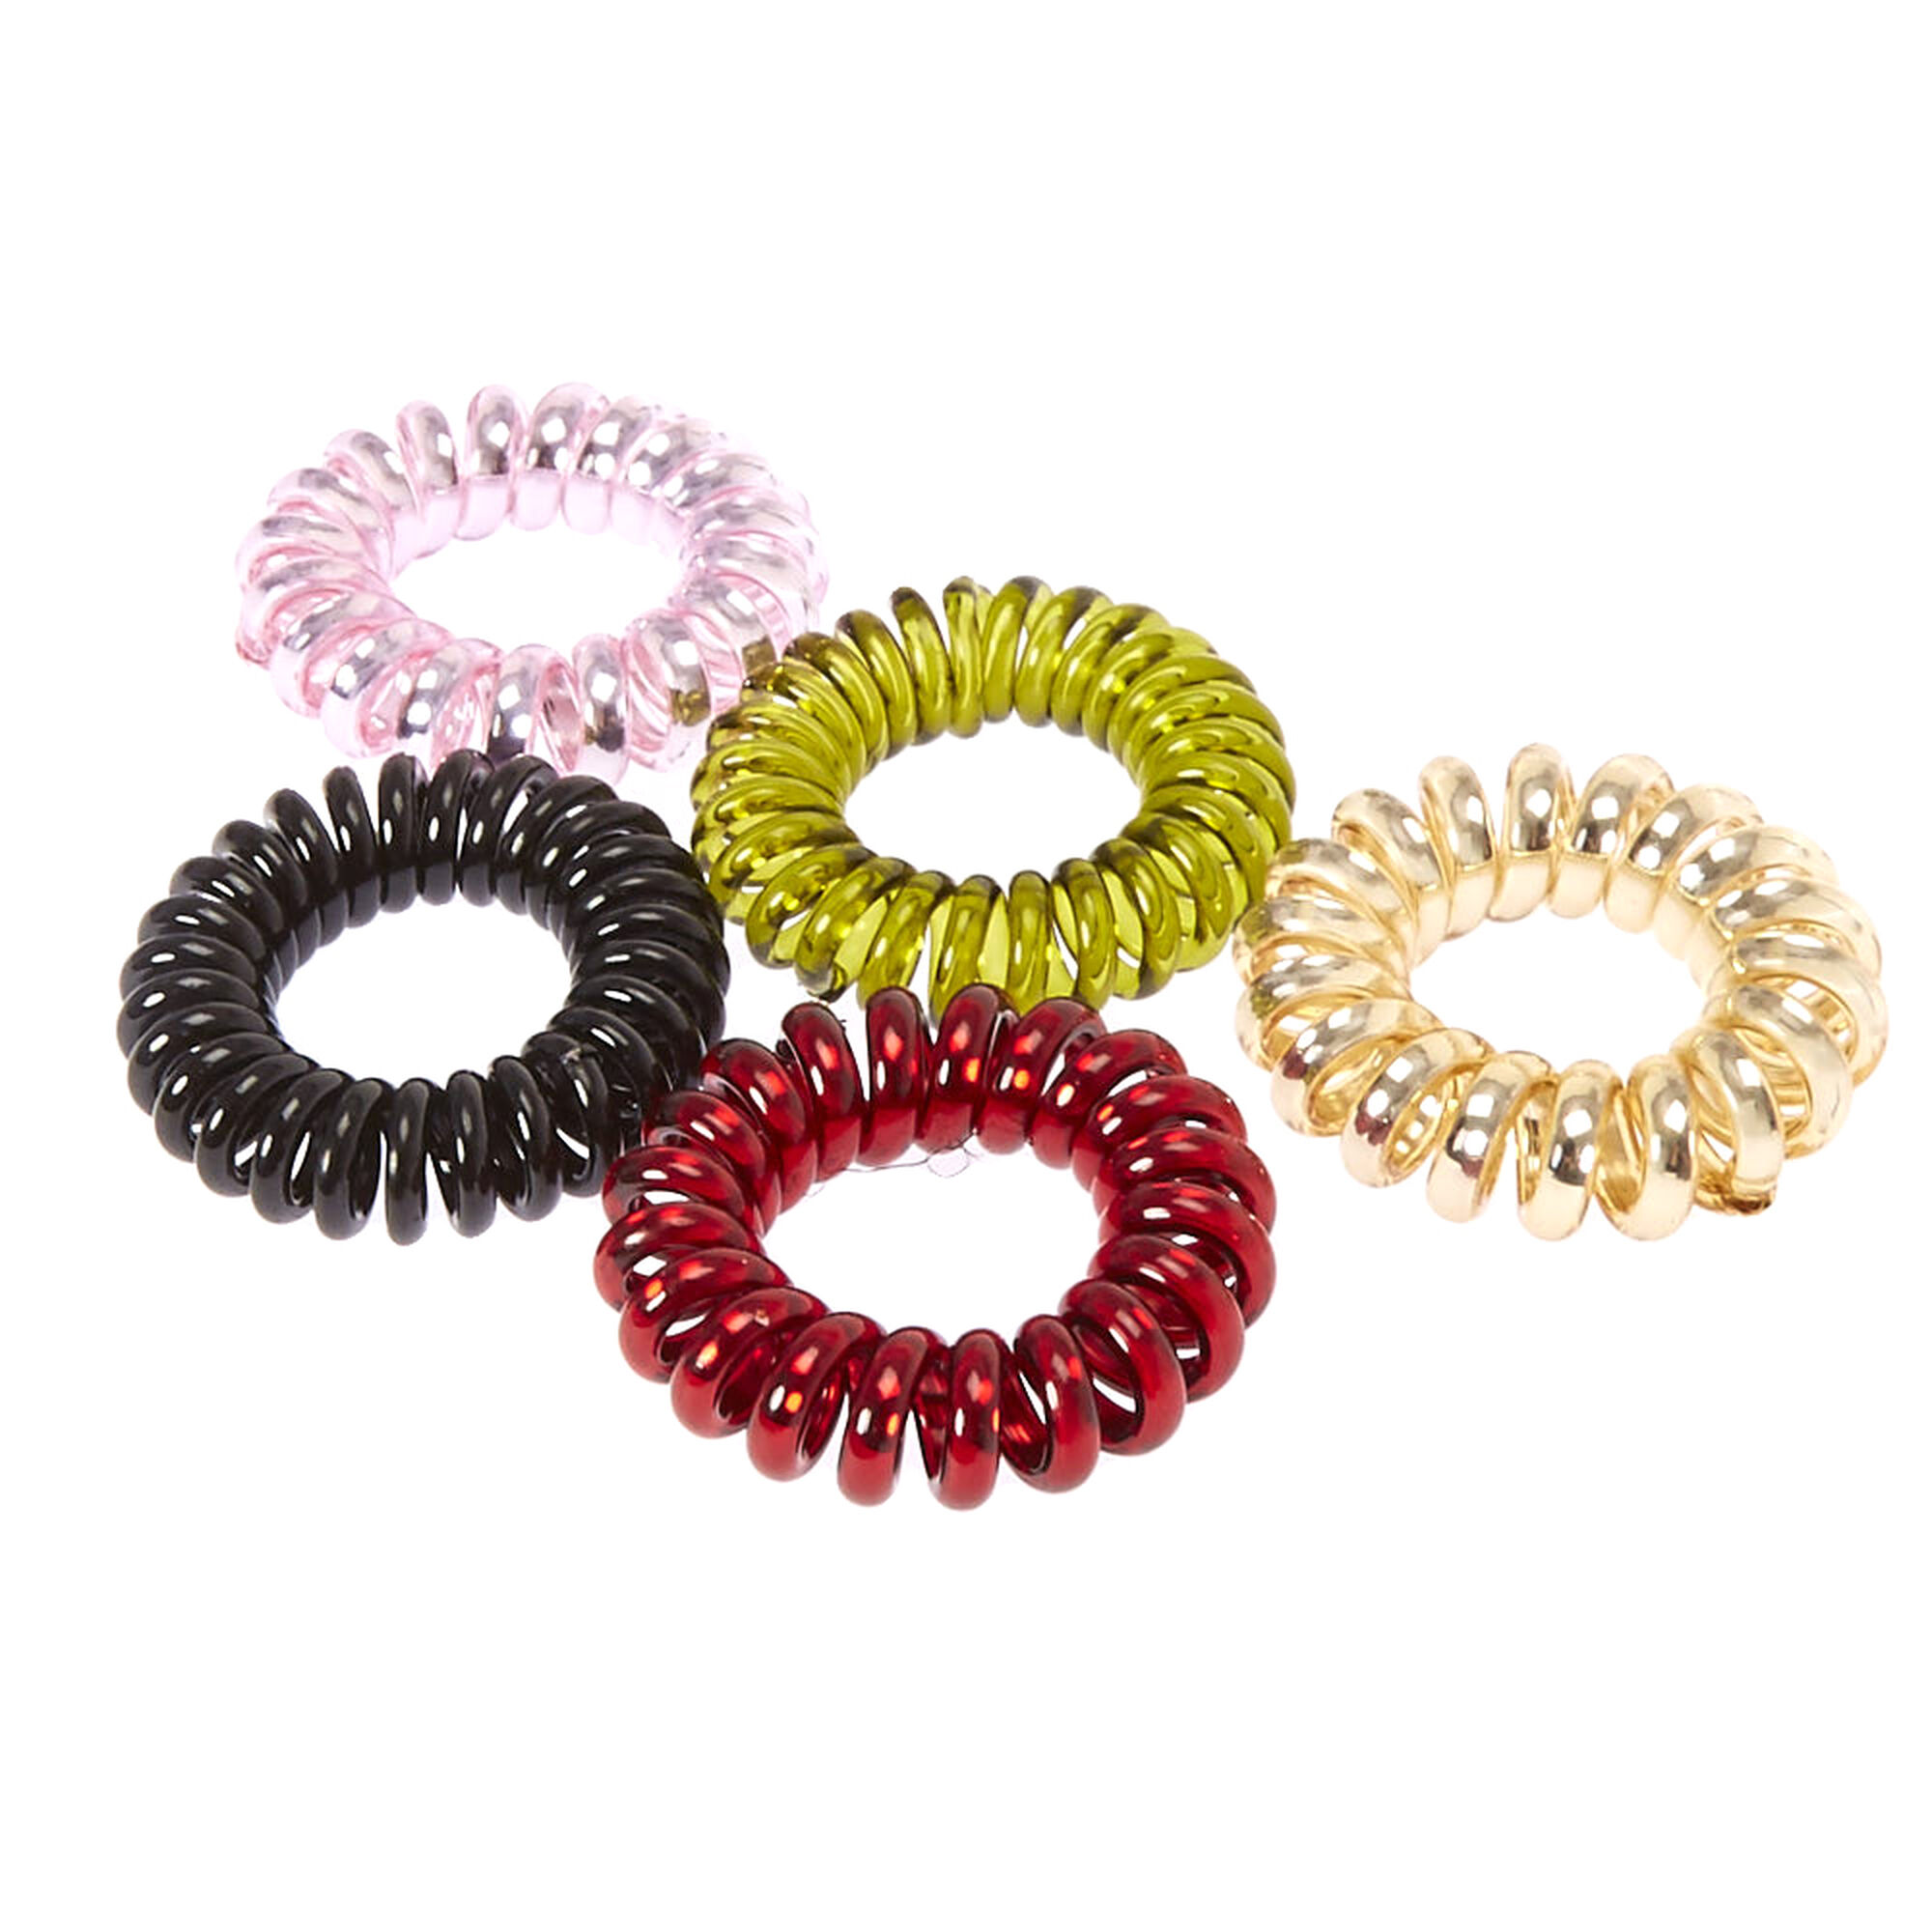 469cb8f10c41 Burgundy & Olive Metallic Coiled Hair Ties | Icing US